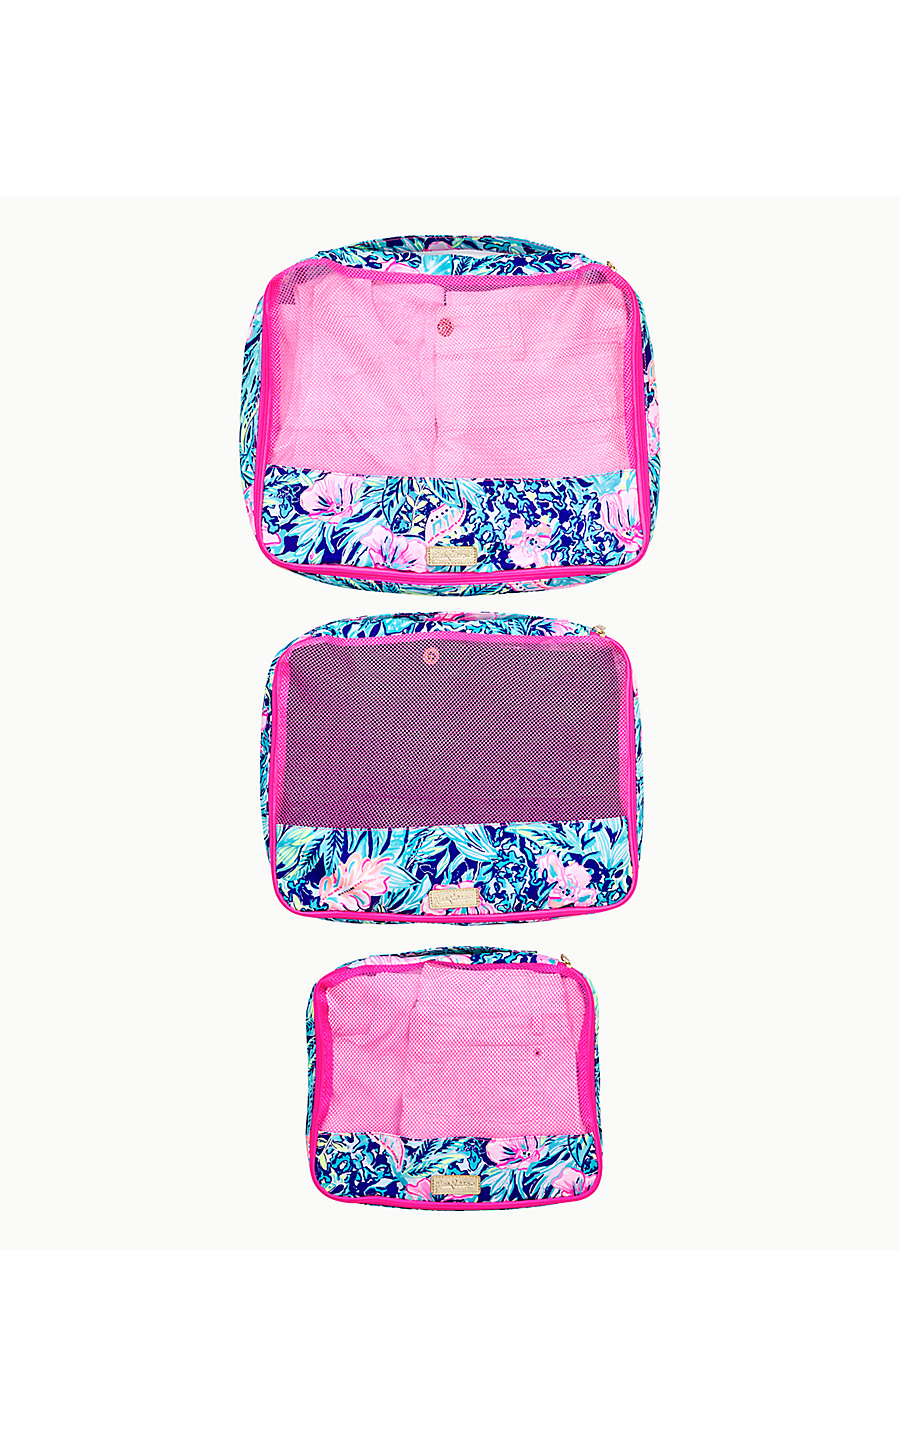 Sea Island packing Cube set